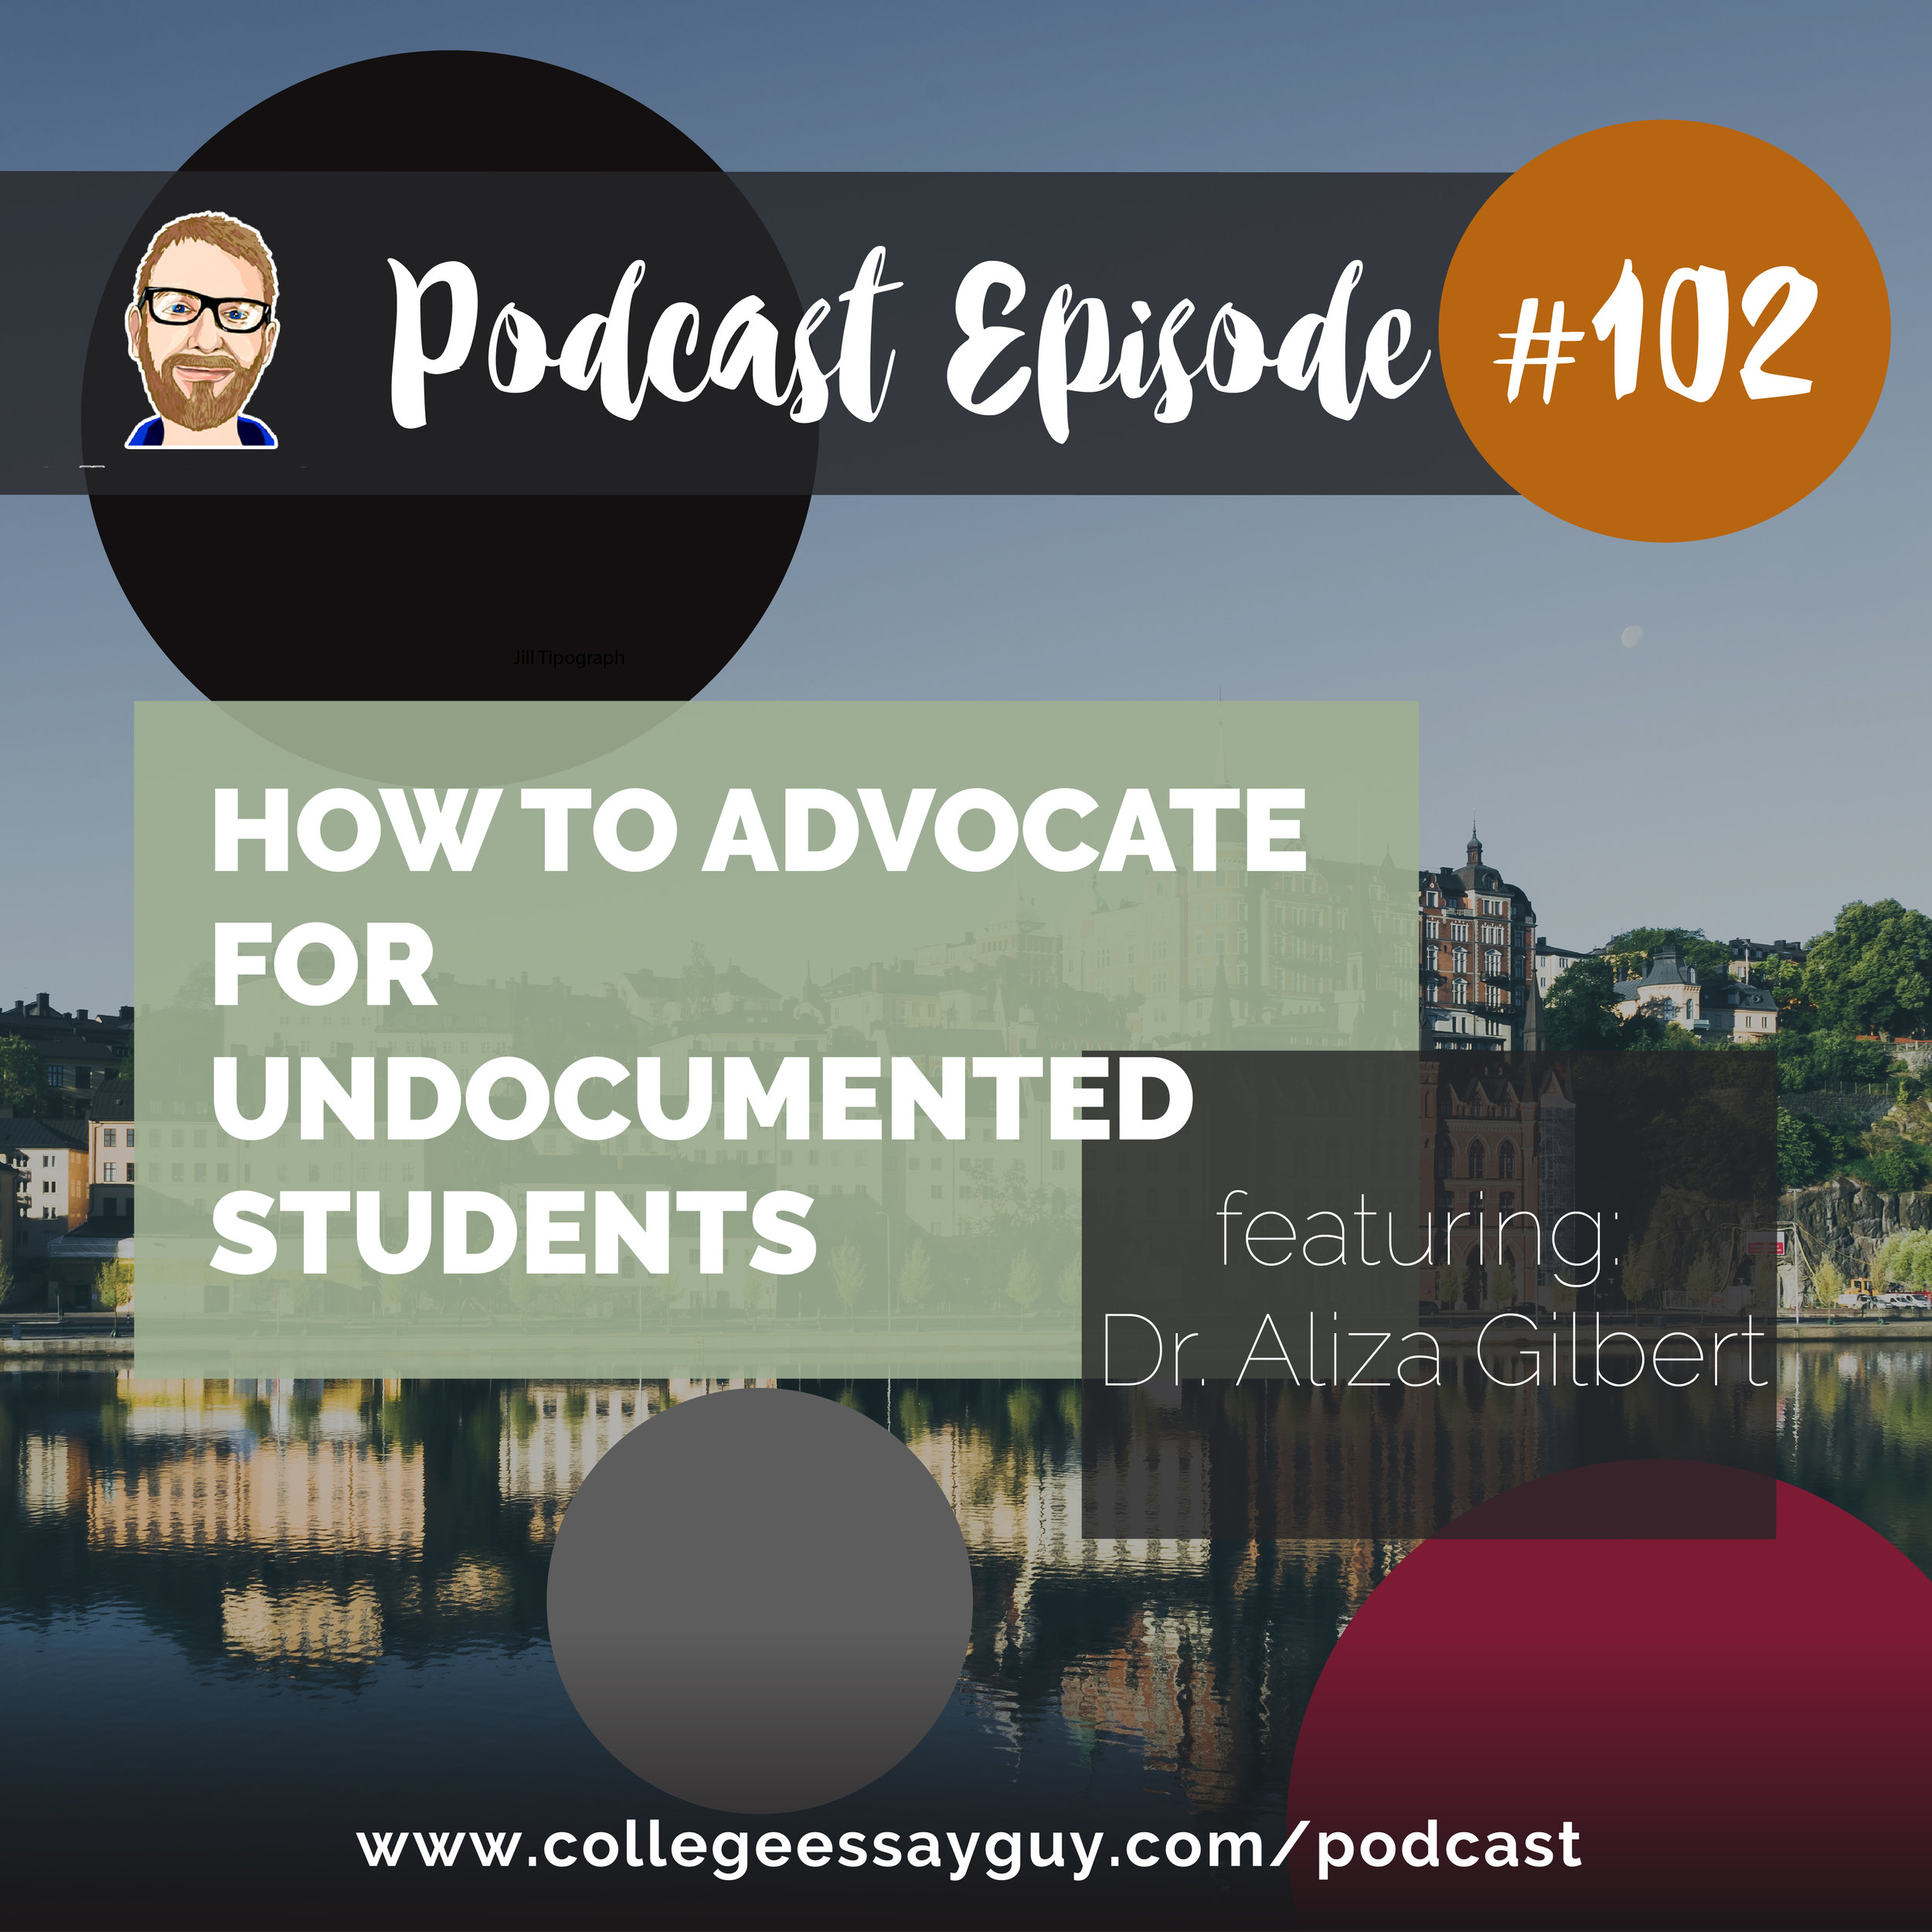 In this episode, which is Part 2 of 2, I speak with veteran counselor Dr. Aliza Gilbert about how counselors and teachers can best advocate for undocumented youth.